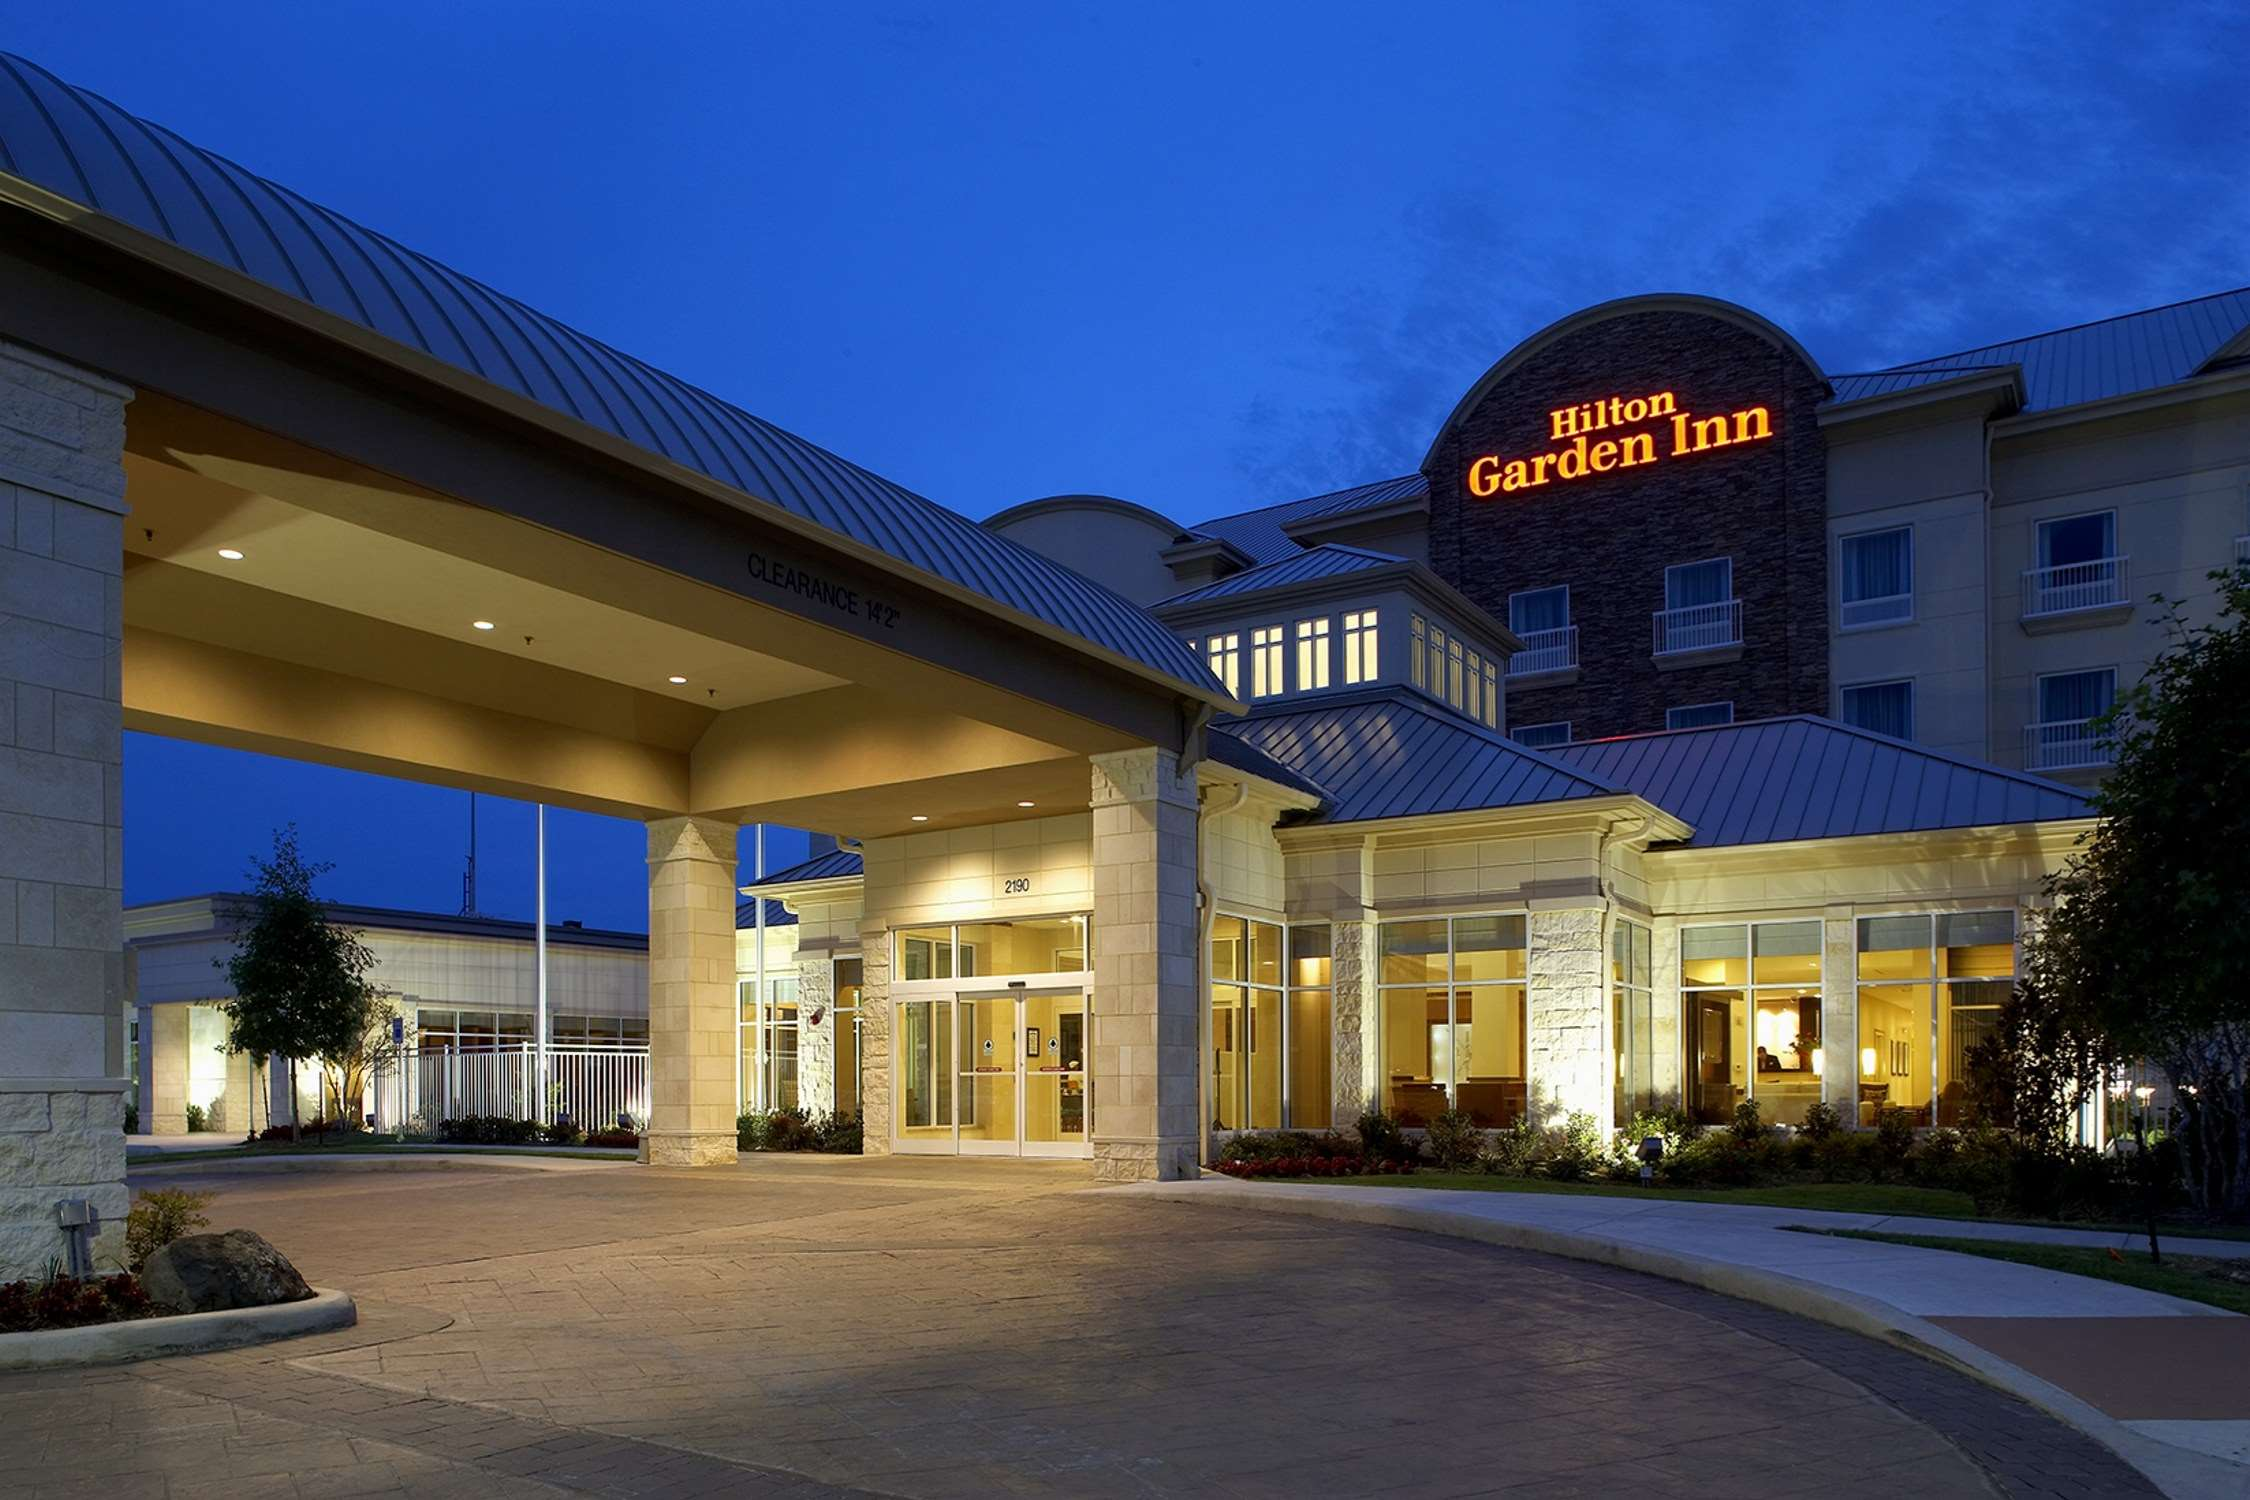 Hilton Garden Inn Dallas/Arlington - Arlington, TX 76006 - (817)274-6644 | ShowMeLocal.com